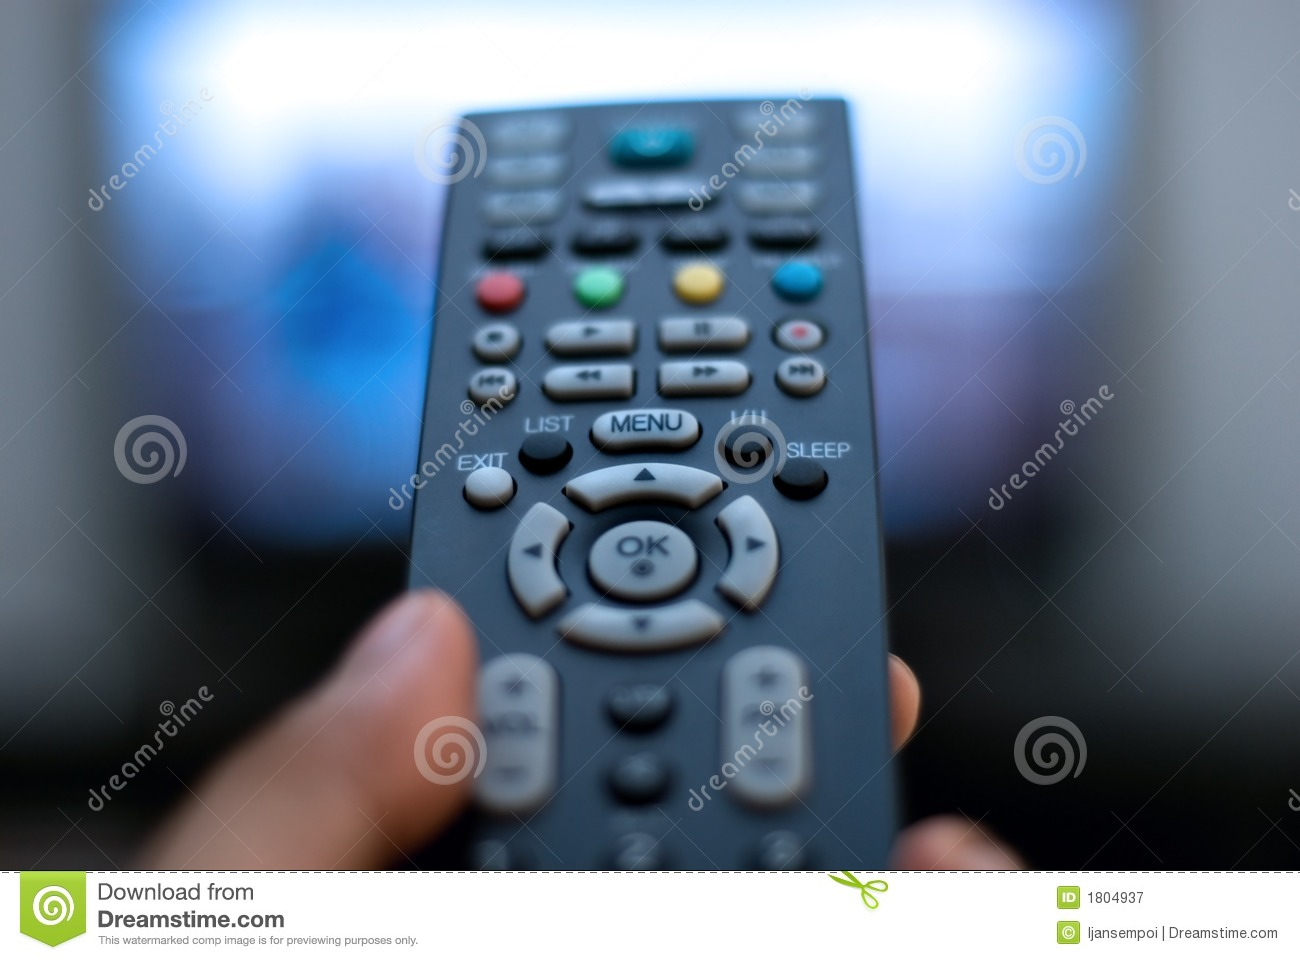 TV remote control stock image  Image of manage, black - 1804937